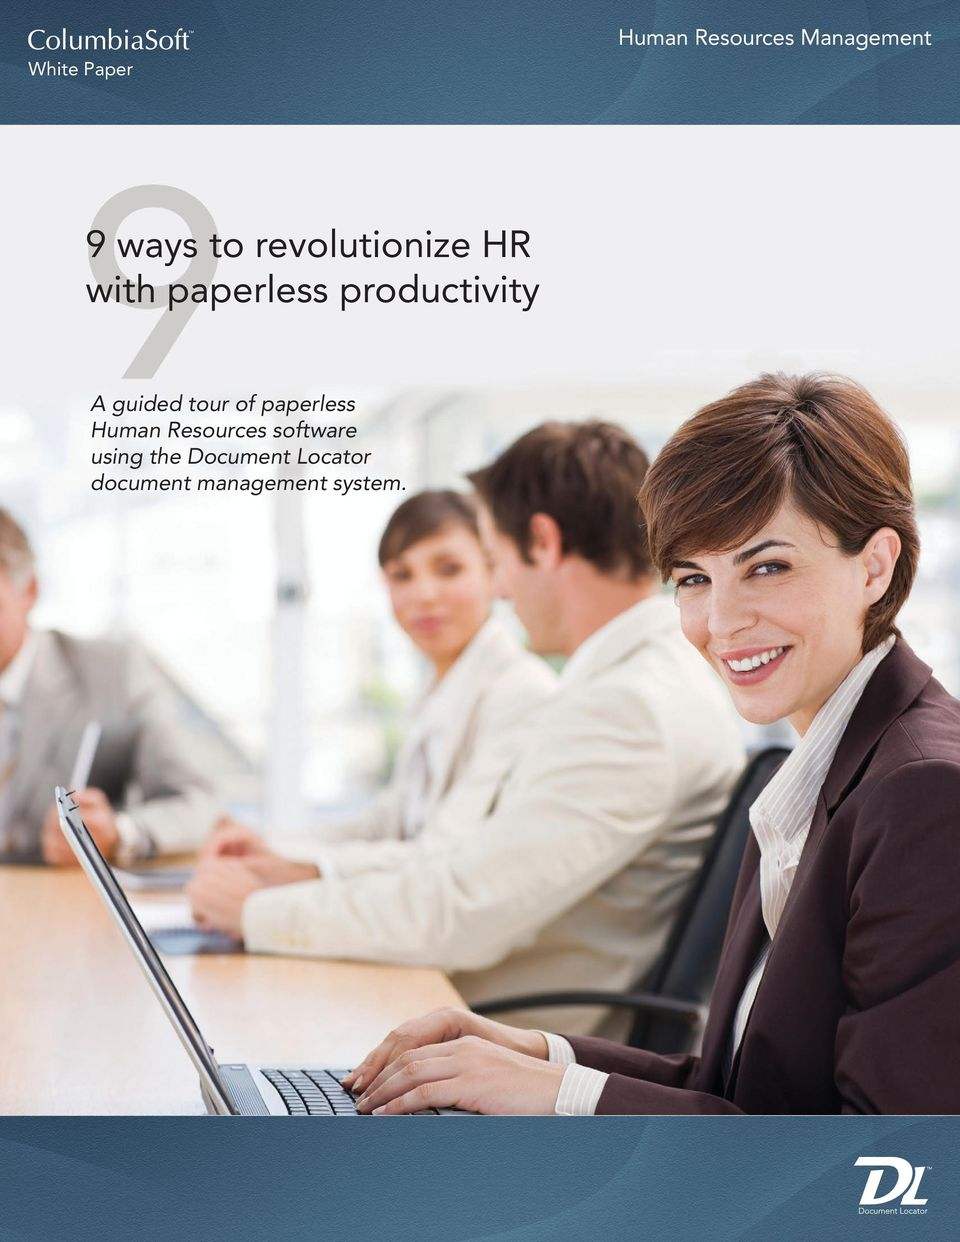 guided tour of paperless Human Resources